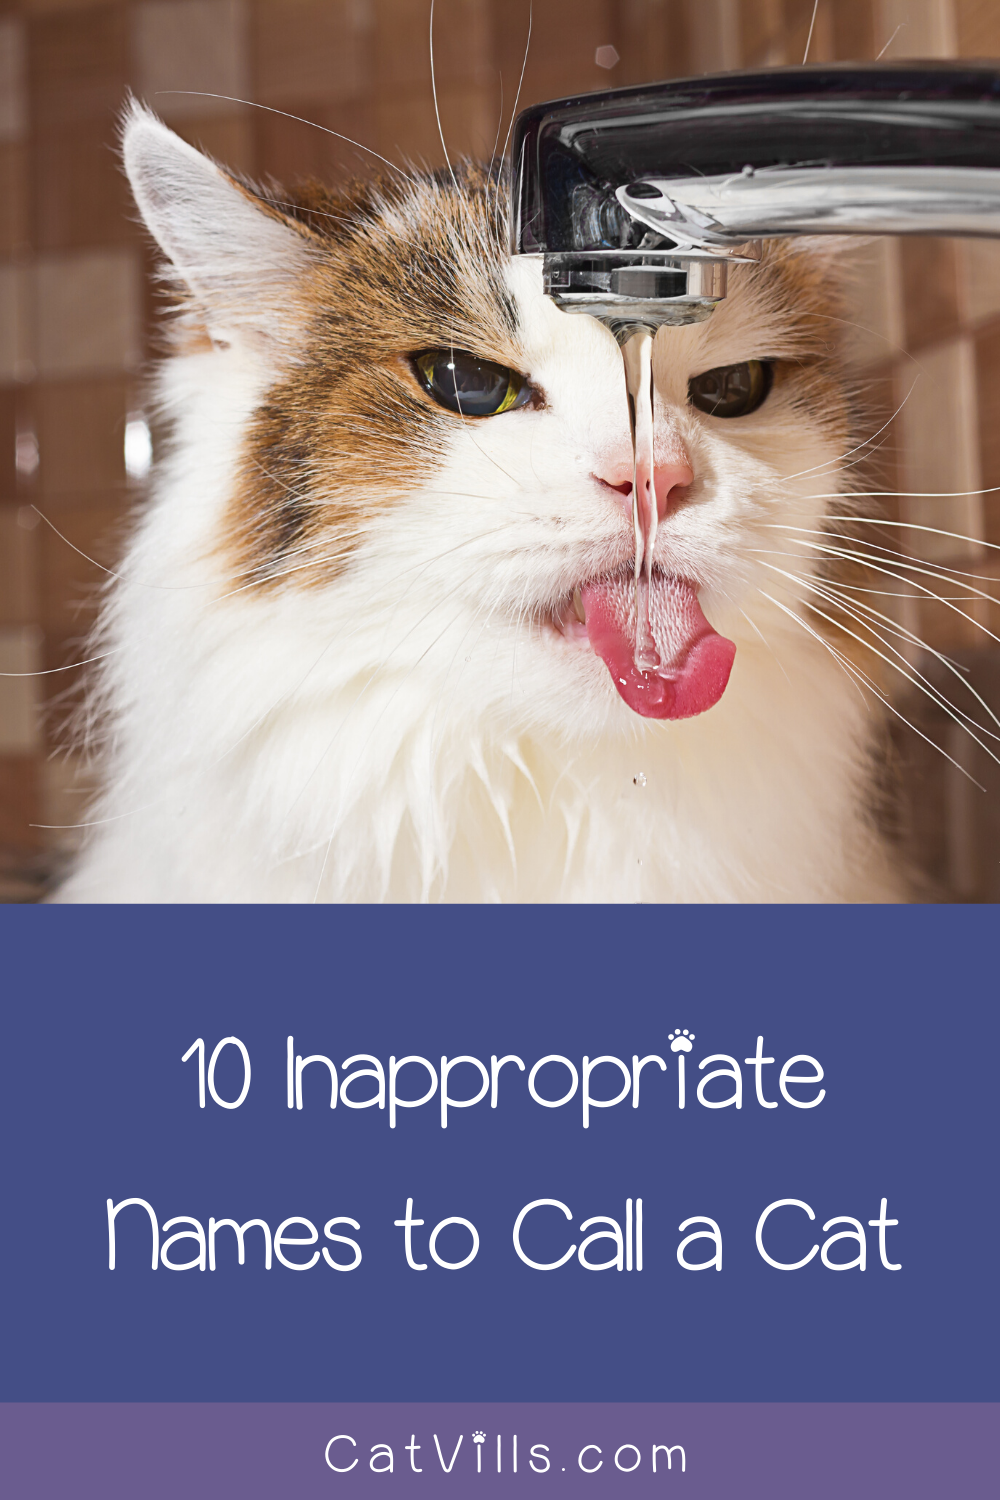 10 Inappropriate Names To Call A Cat Cats Inappropriate Cat Cat Names